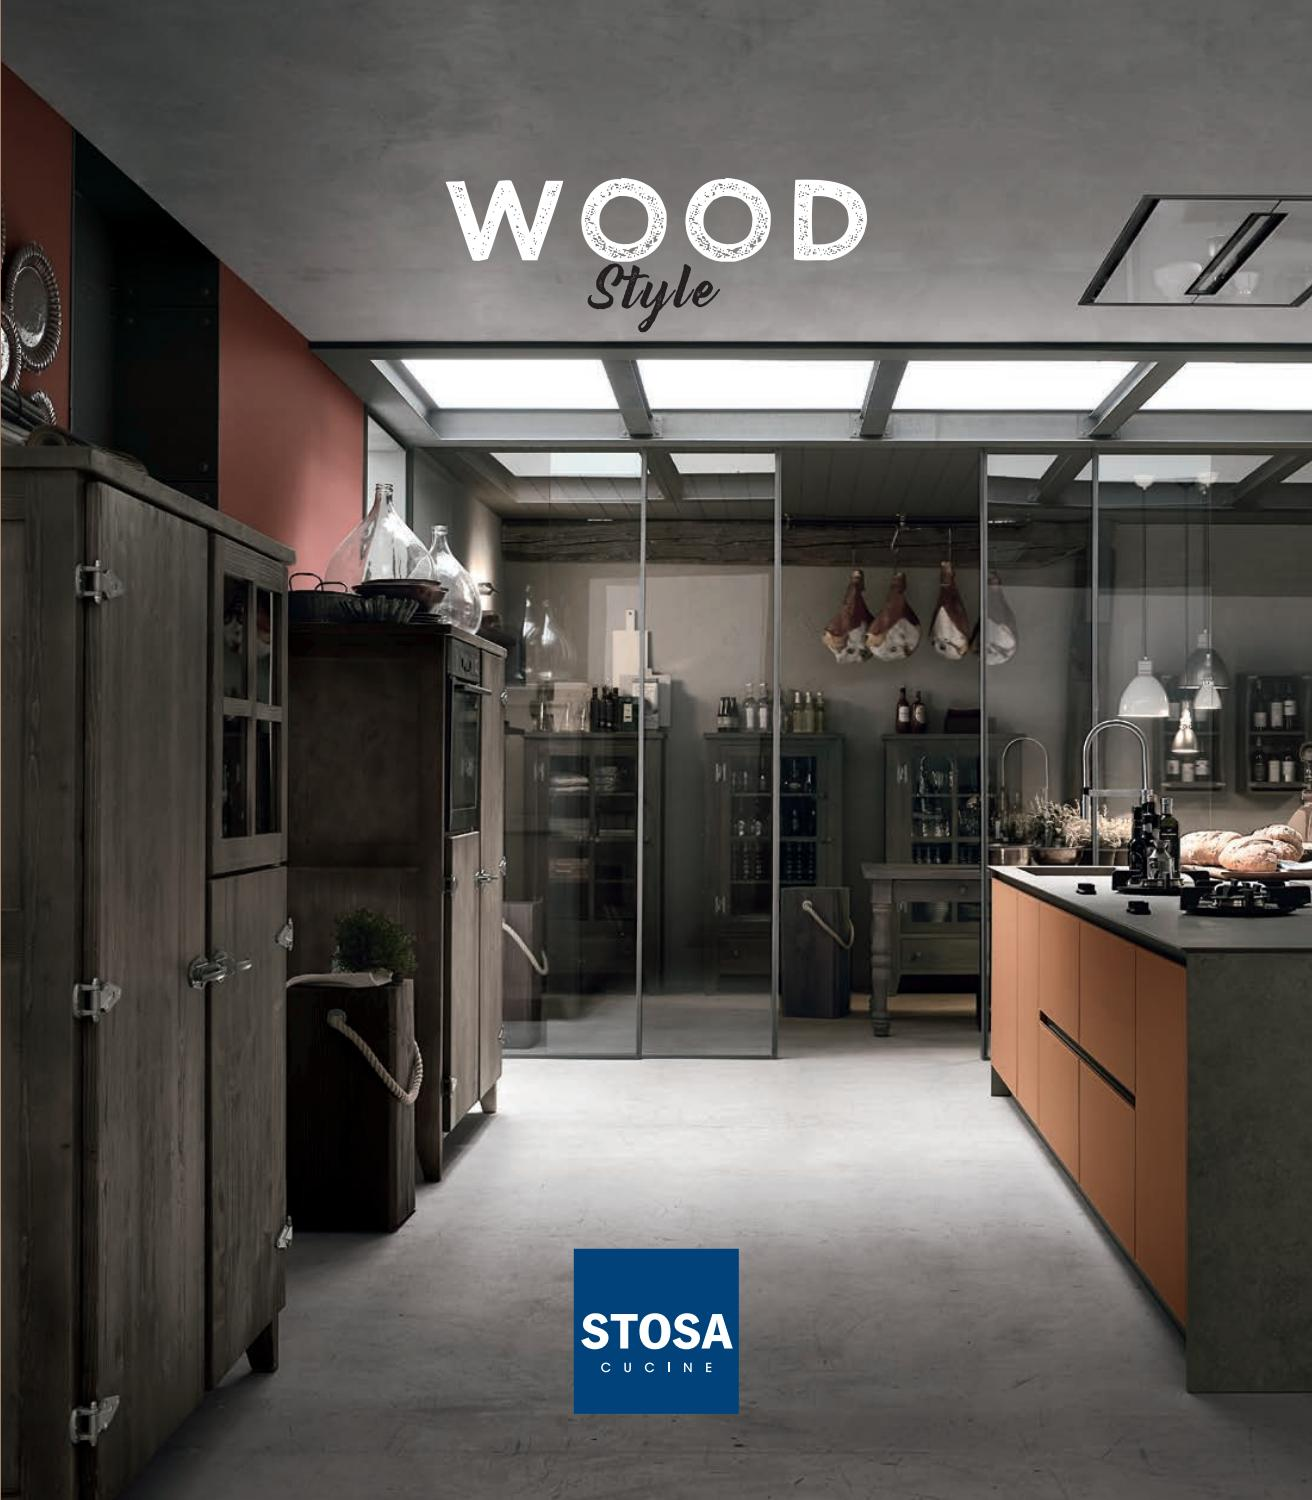 Catalogo wood 2017 by stosa cucine issuu - Stosa cucine catalogo ...